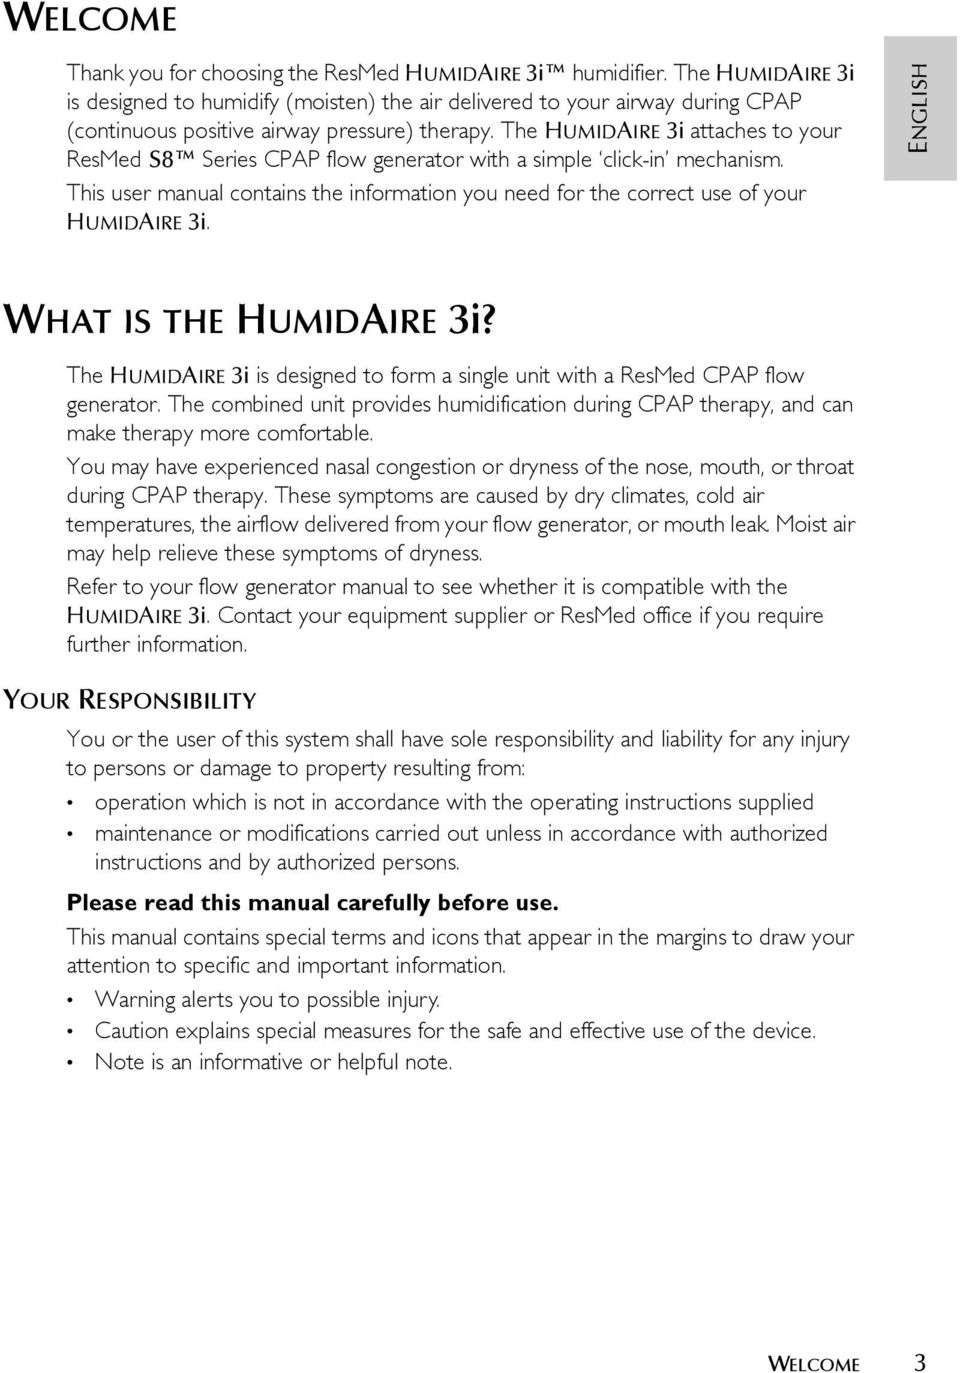 The HUMIDAIRE 3i attaches to your ResMed S8 Series CPAP flow generator with a simple click-in mechanism. This user manual contains the information you need for the correct use of your HUMIDAIRE 3i.